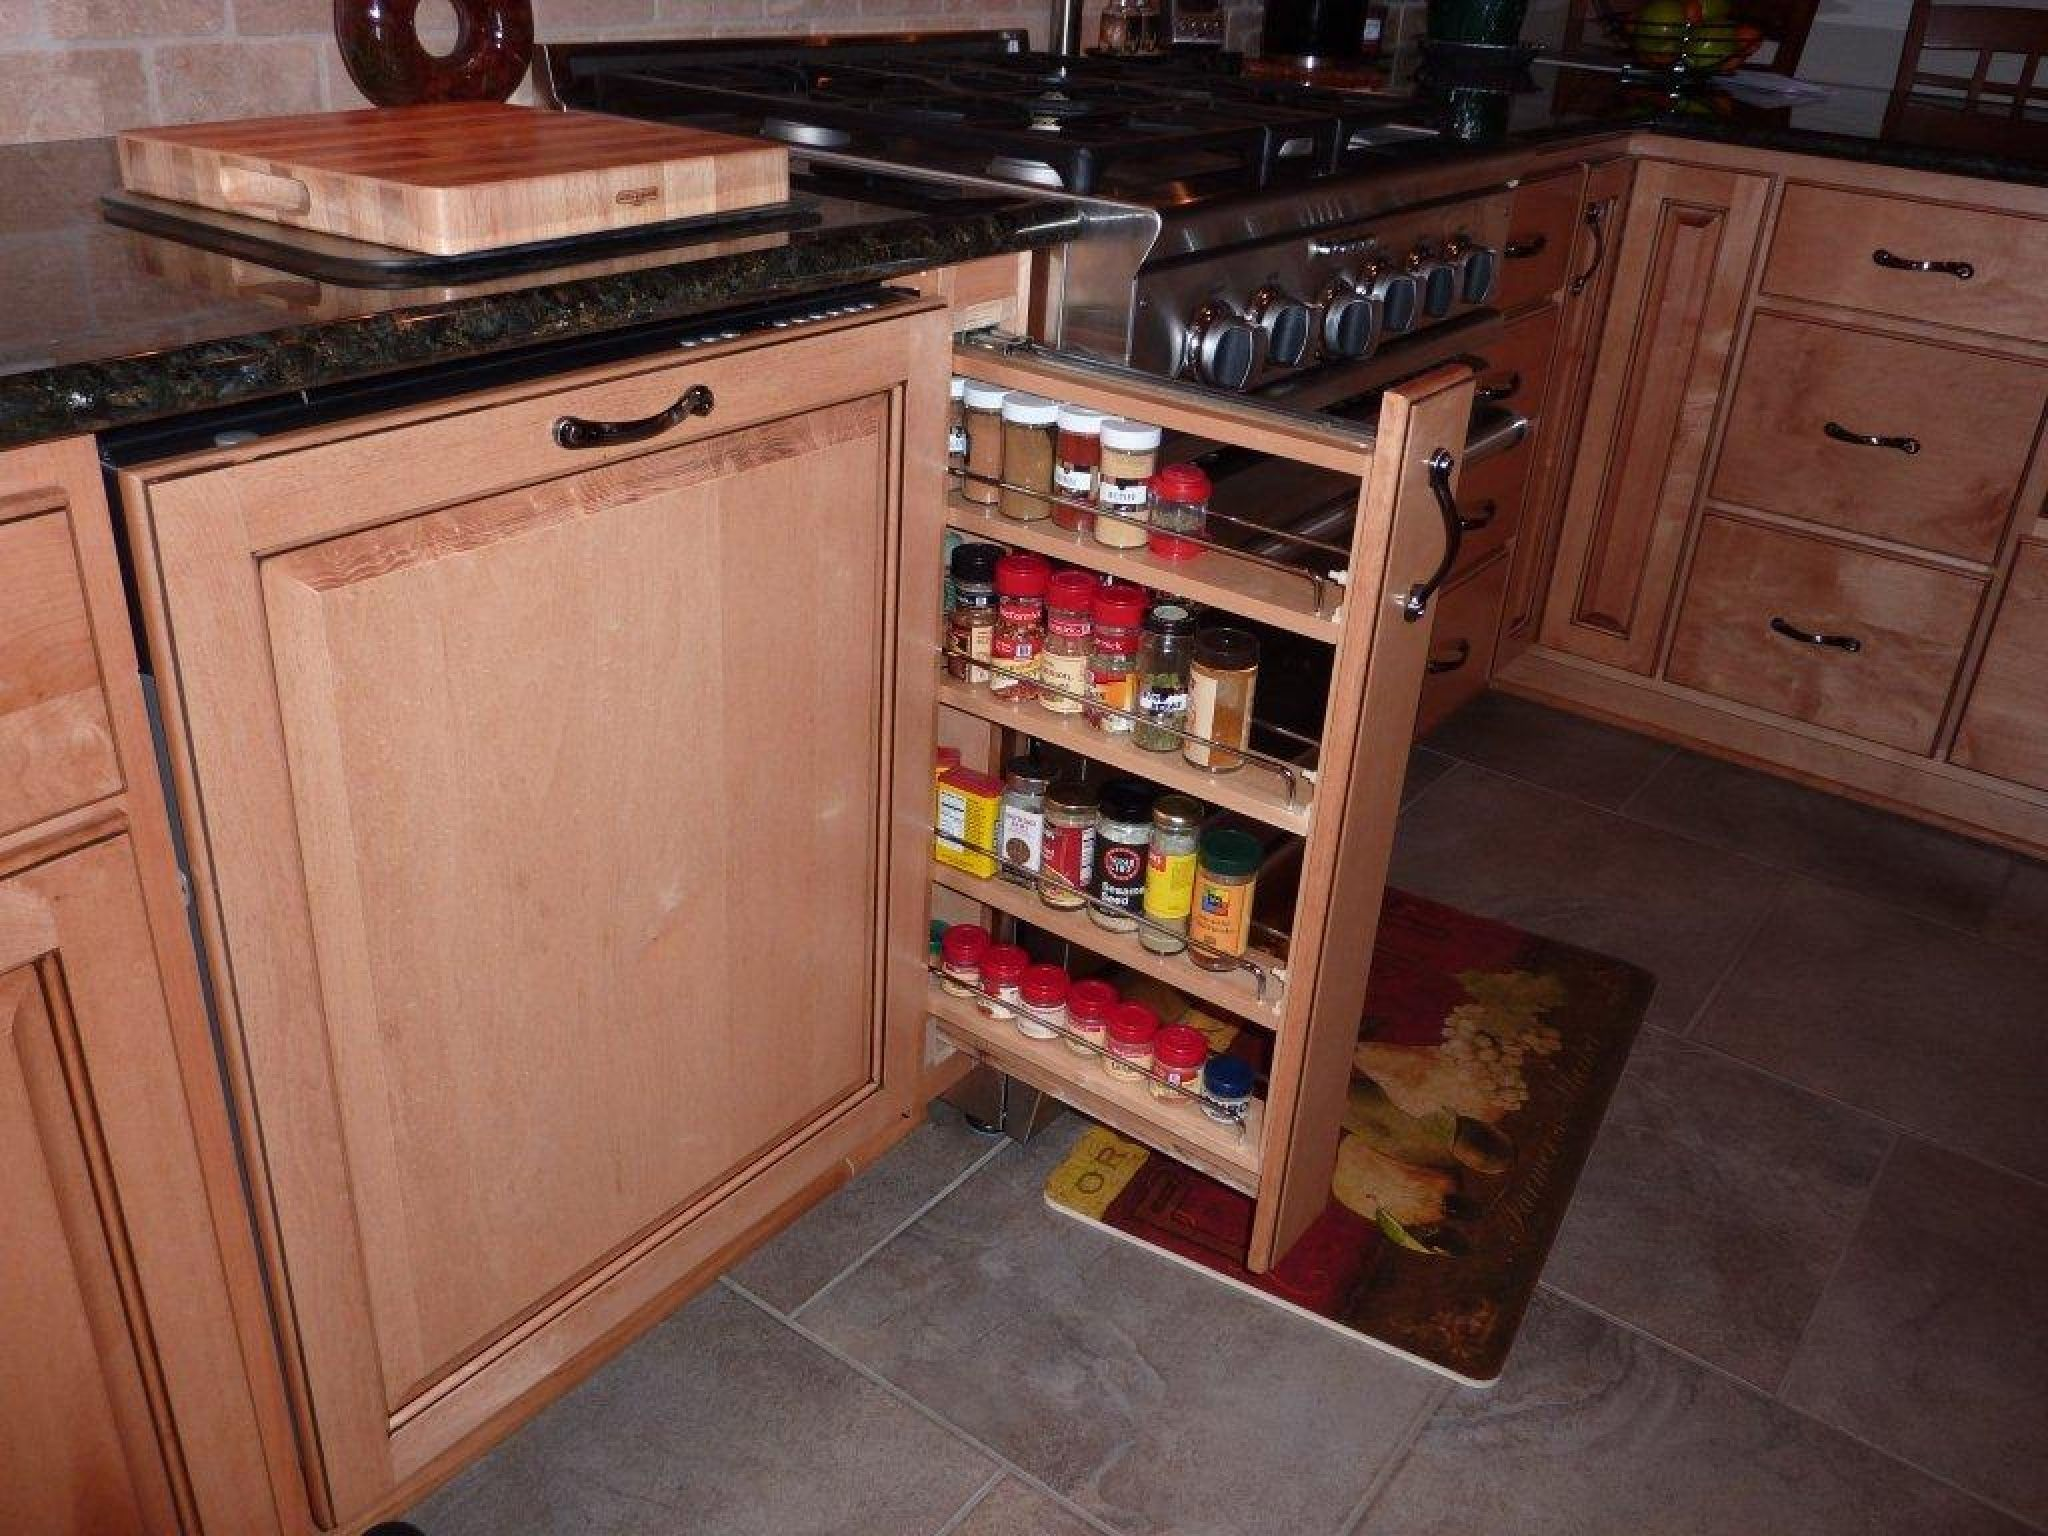 Kitchen Cabinet Business Cabinets Countertops Ideas Check More At Http Www